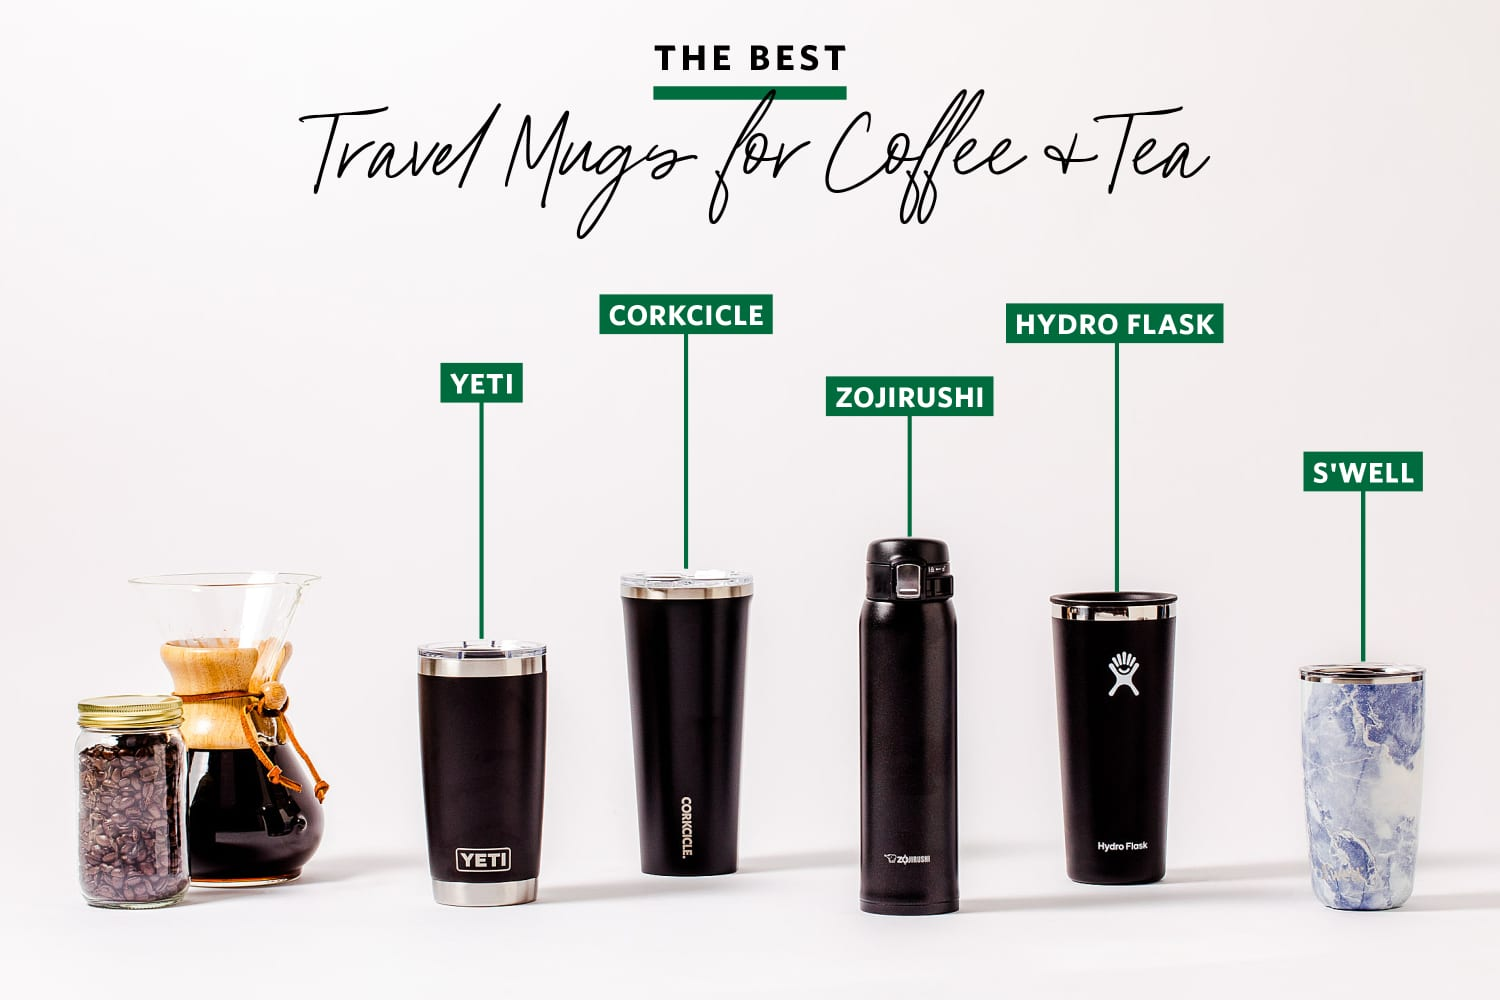 We Tested 5 Different Travel Mugs for Coffee and Tea — The Winner Was Not What We Expected